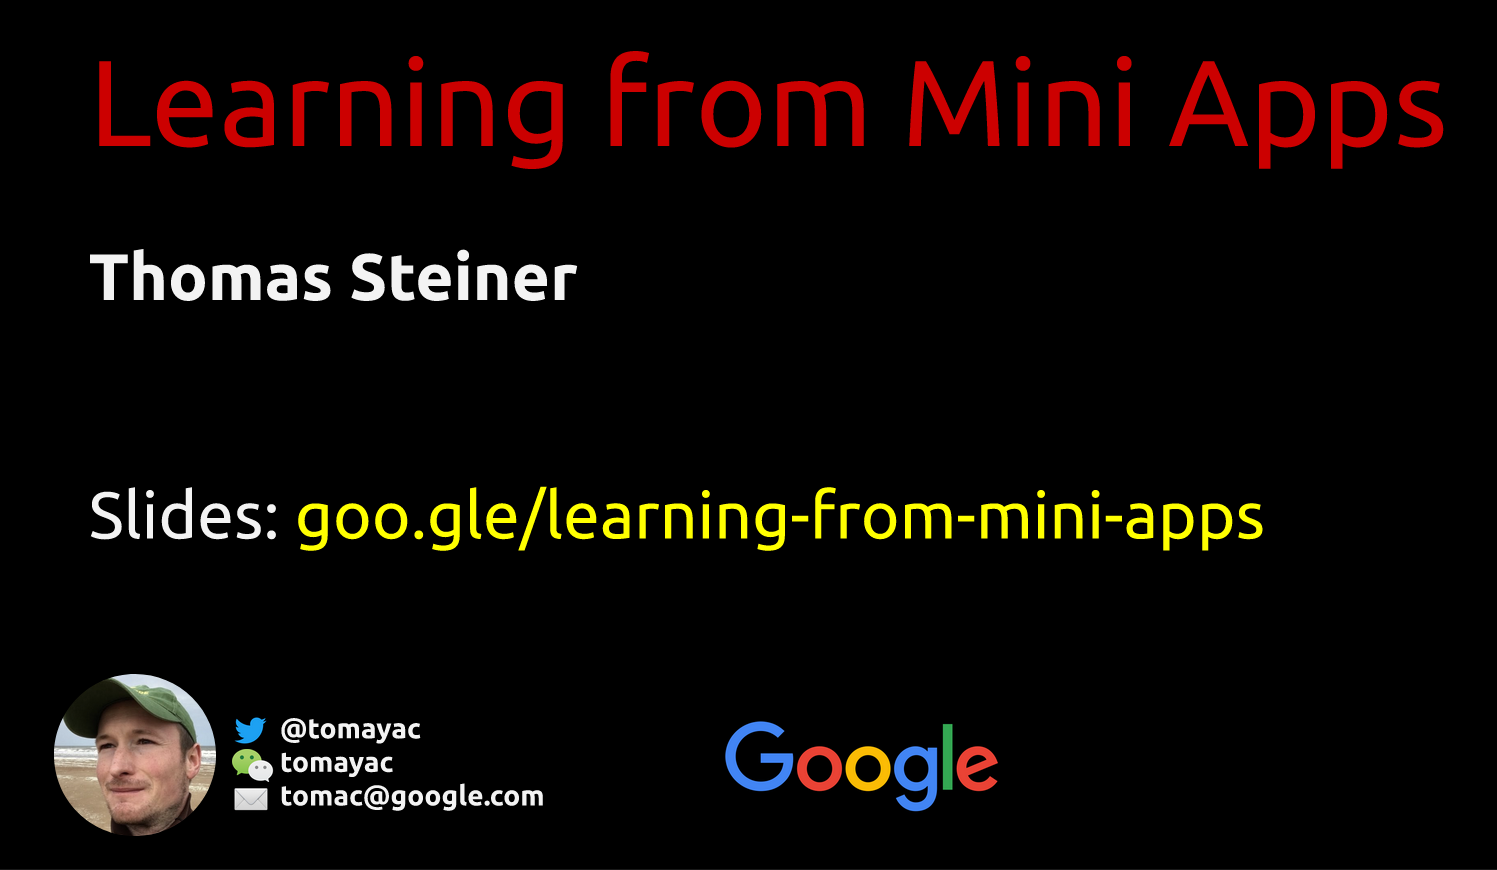 Cover slides: Learning from Mini Apps by Thomas Steiner